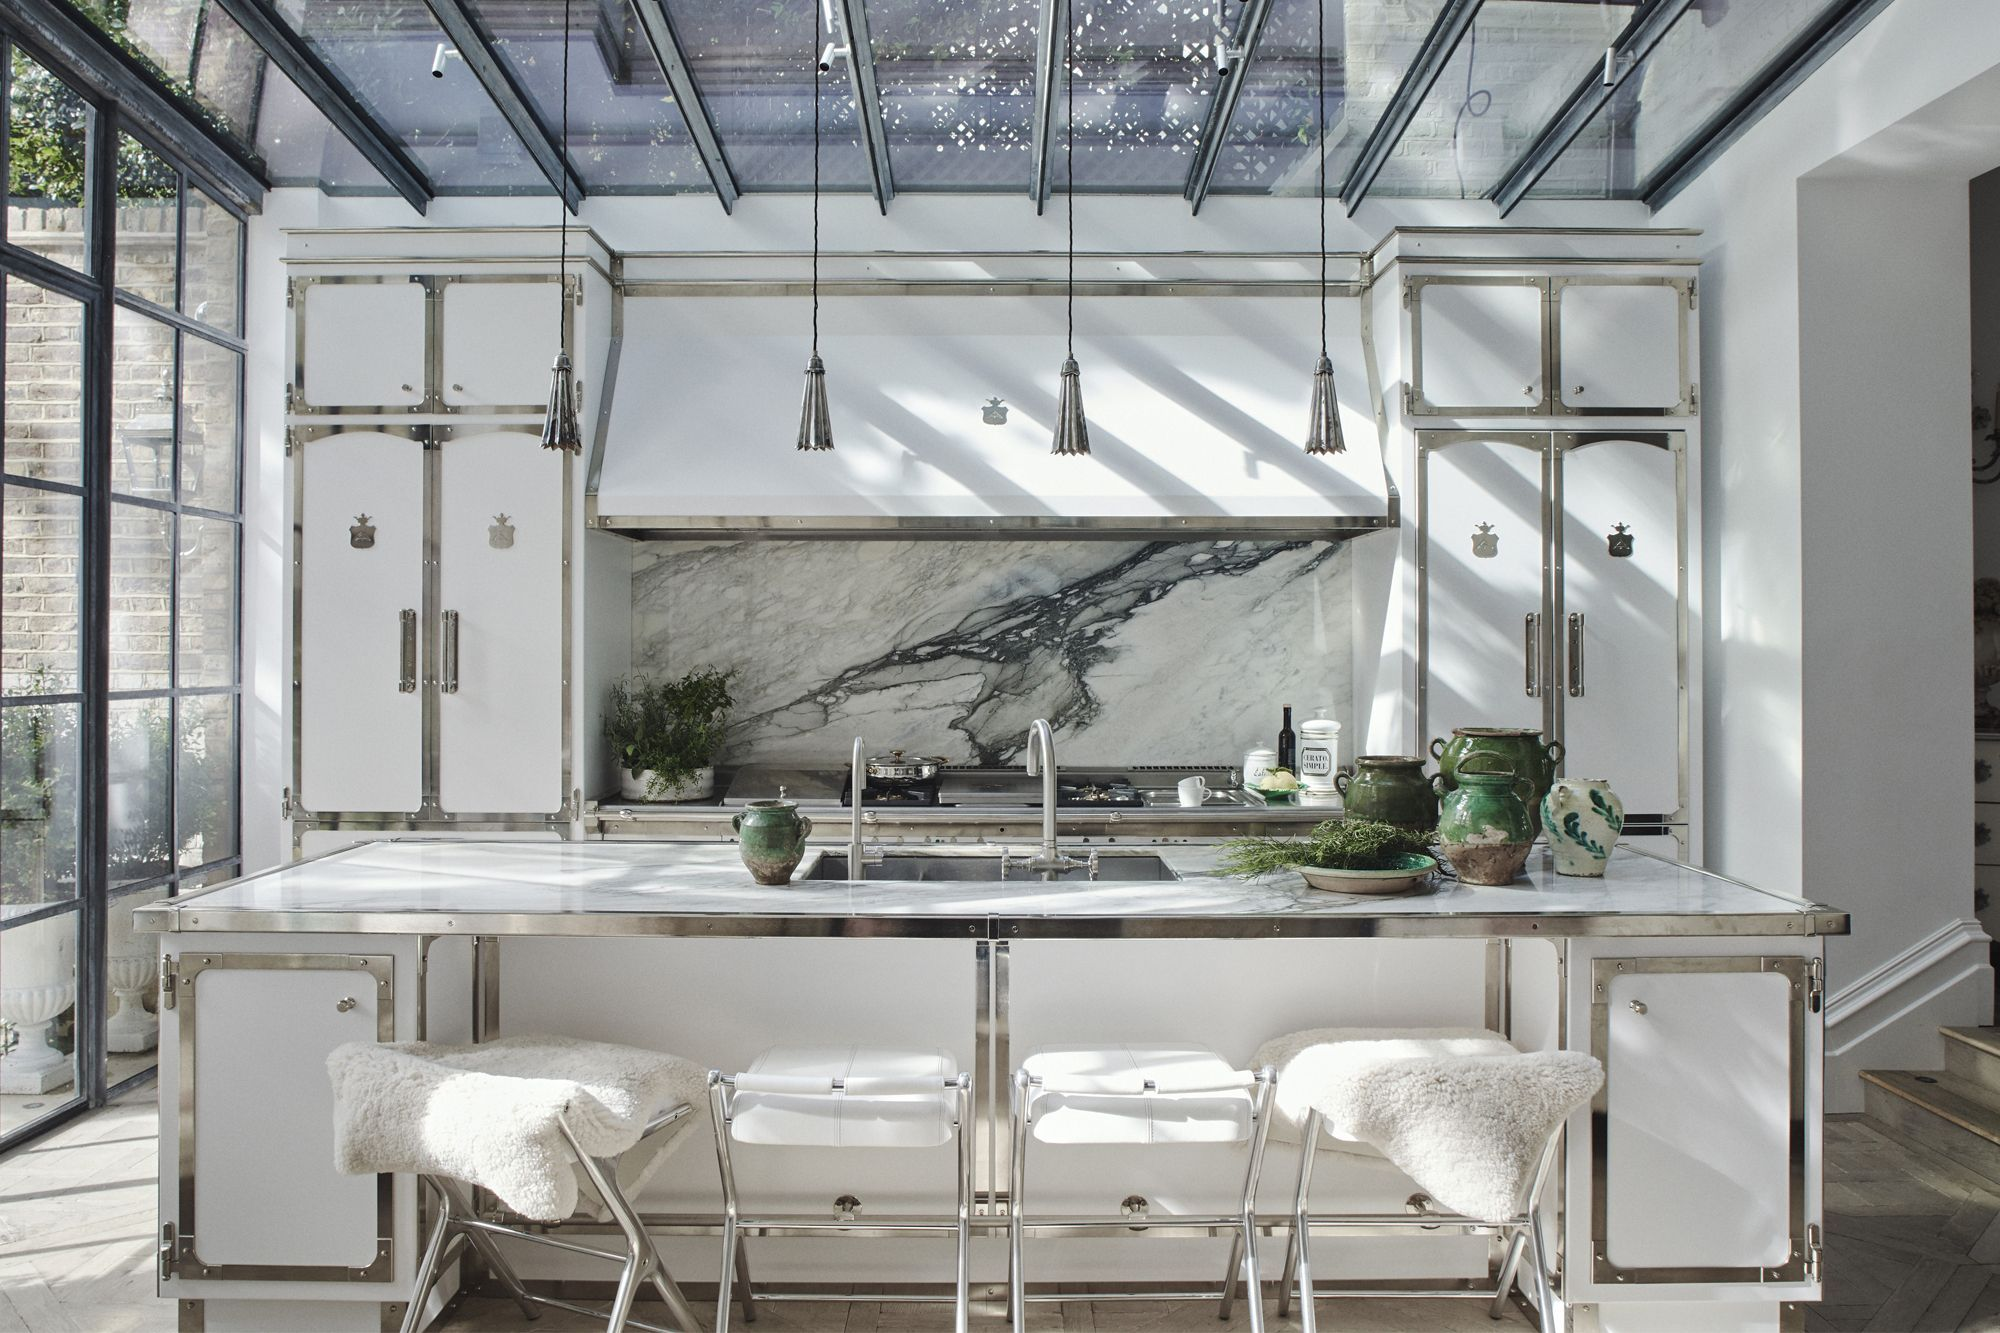 This chic white kitchen, a collaboration between Henry and Italian kitchen manufacturer Officine Gullo, features a mix of finishes that create interesting depth